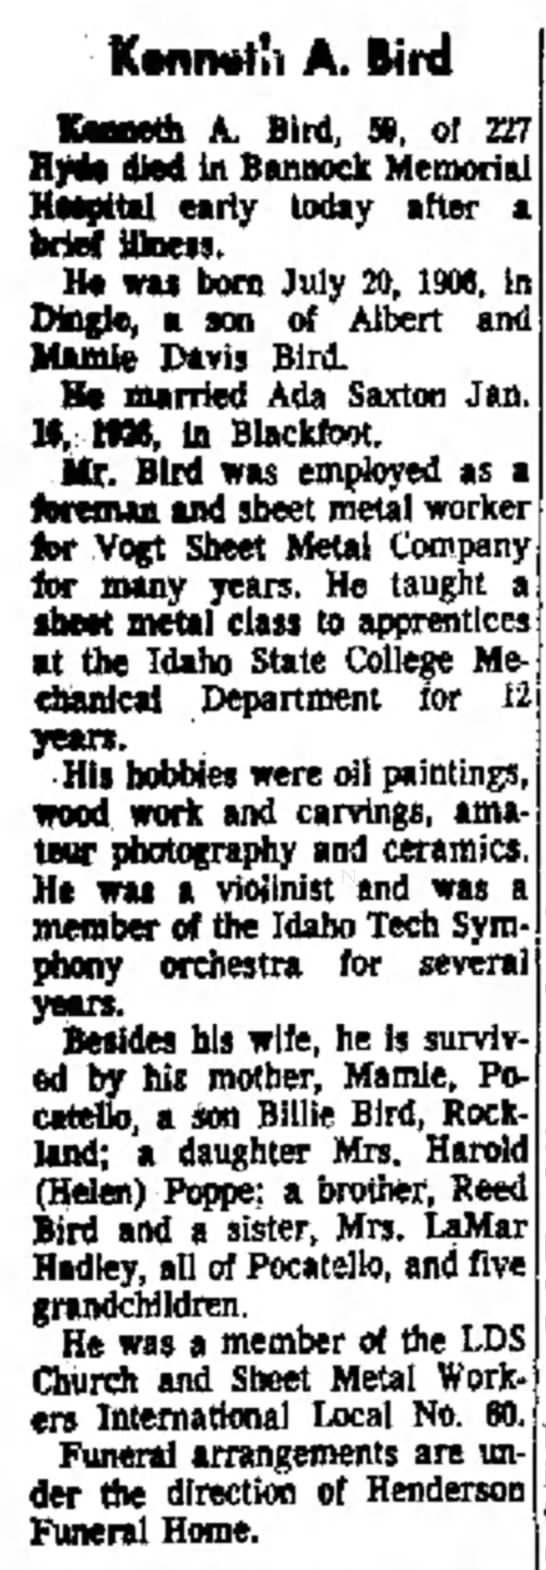 Obituary of Kenneth A. Bird (1906-1966) - K«nn«t'i A. Bird KMMth A. Bird, », of 227...